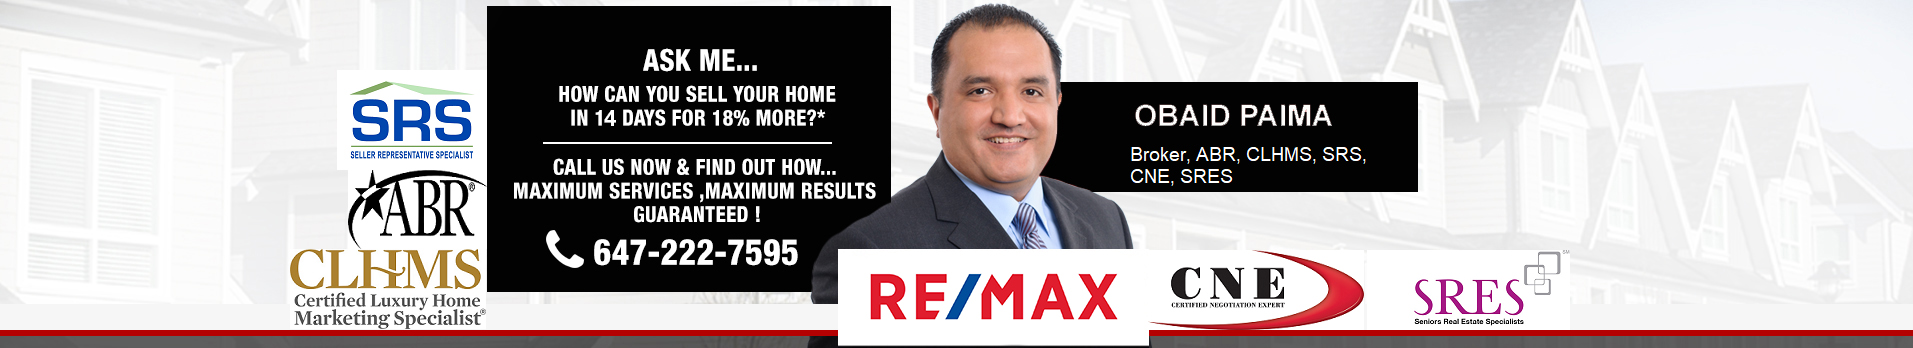 7681 Darcel Ave,  (MLS® #: W4914279) -  See this detached house for sale in Malton, Mississauga